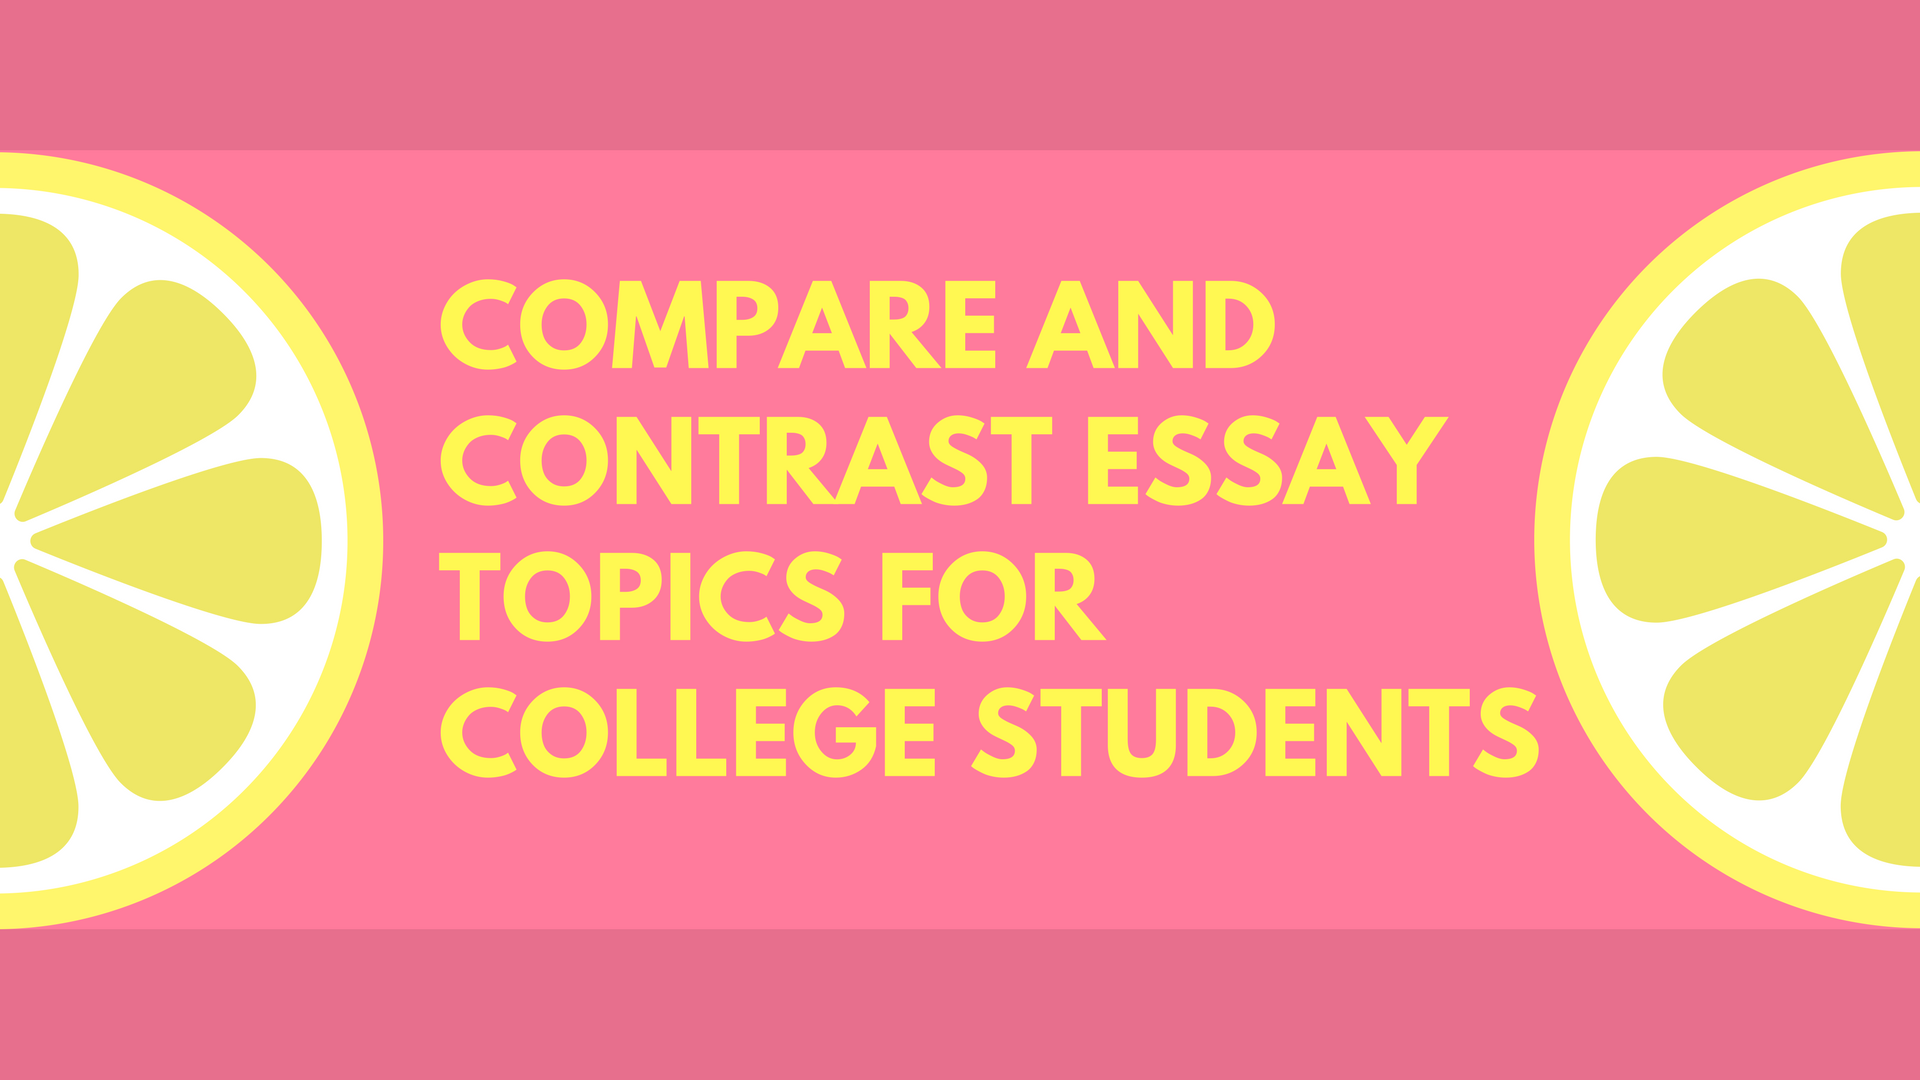 compare and contrast college essay topics A compare/contrast essay is asking you to find the similarities and differences between two subjects.